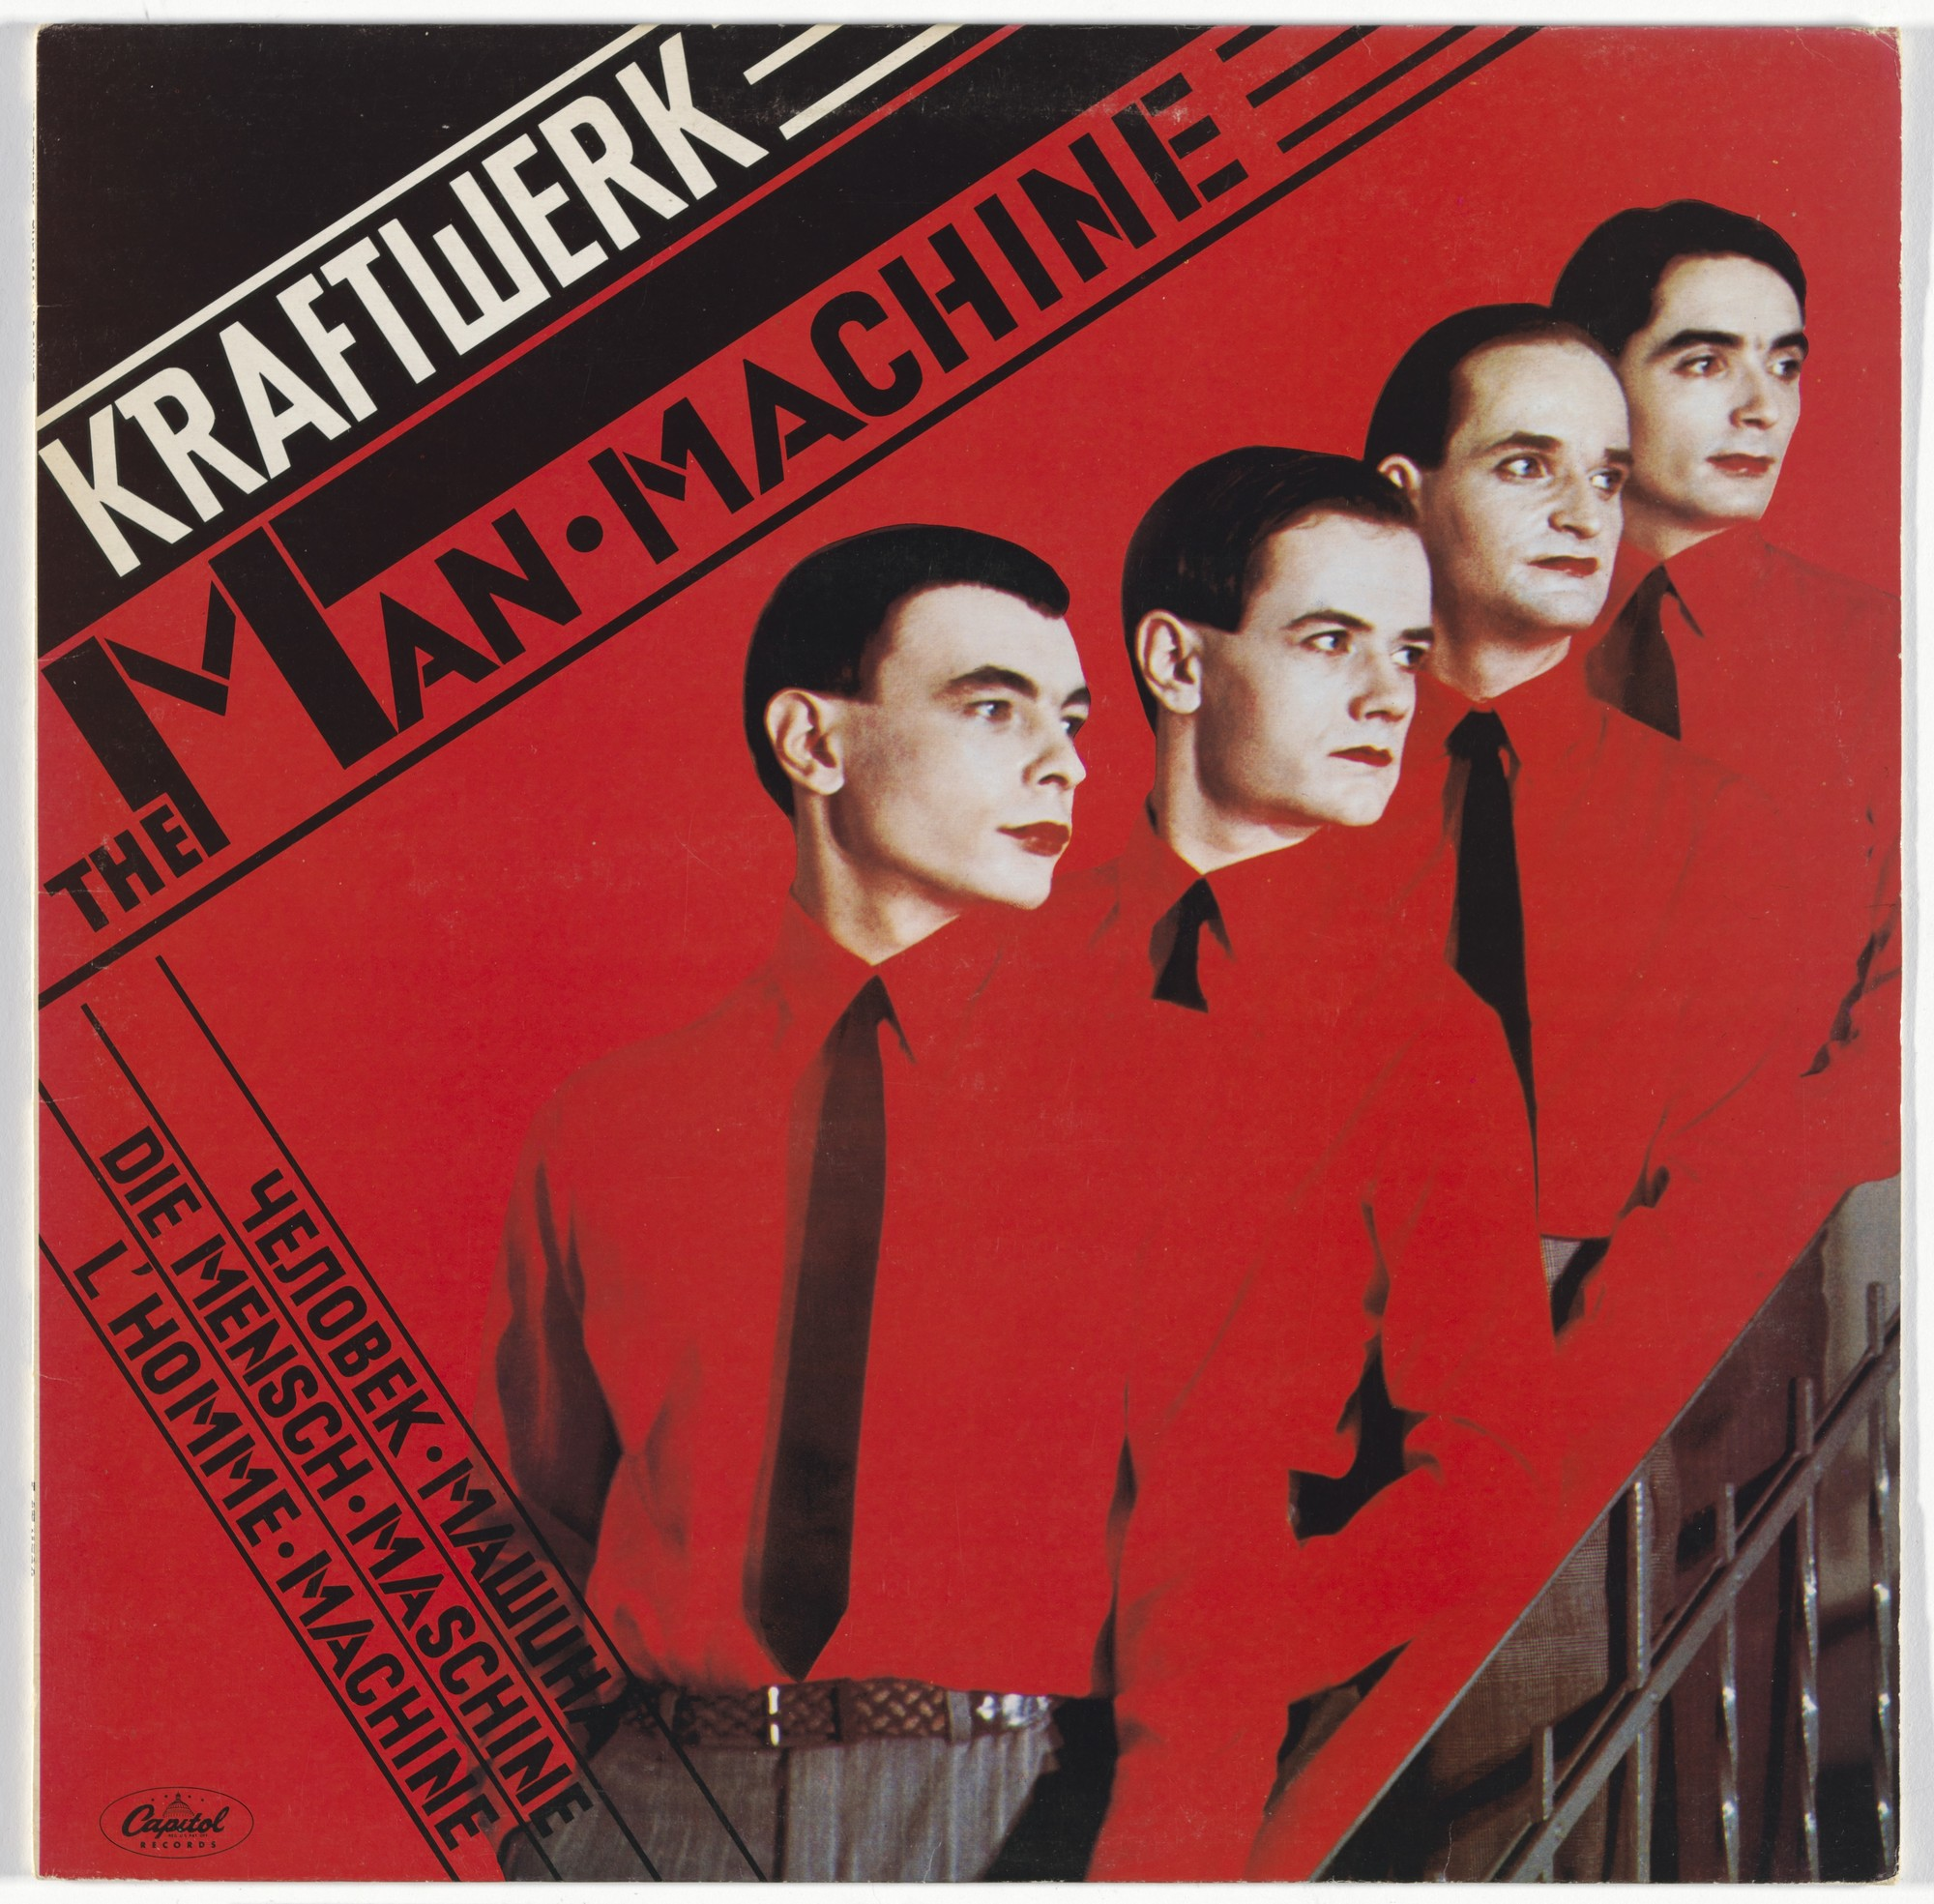 Kraftwerk - A Man Machine